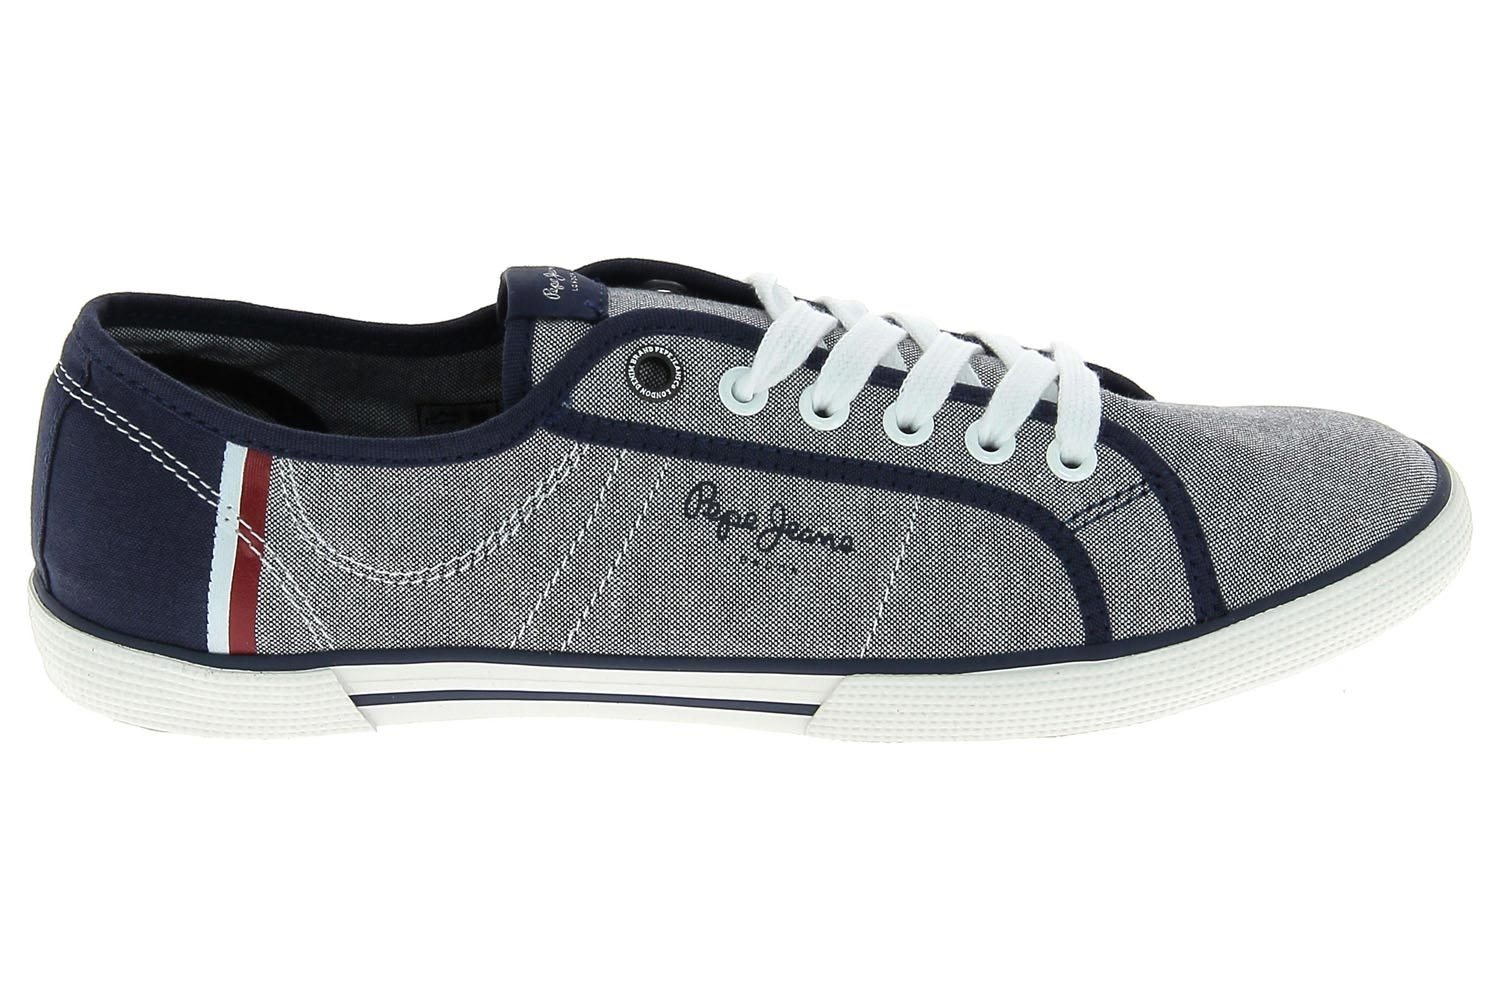 Chaussures En Toile Pepe Jeans Bleu Pms30356 Chaussures Homme Pepe Jeans